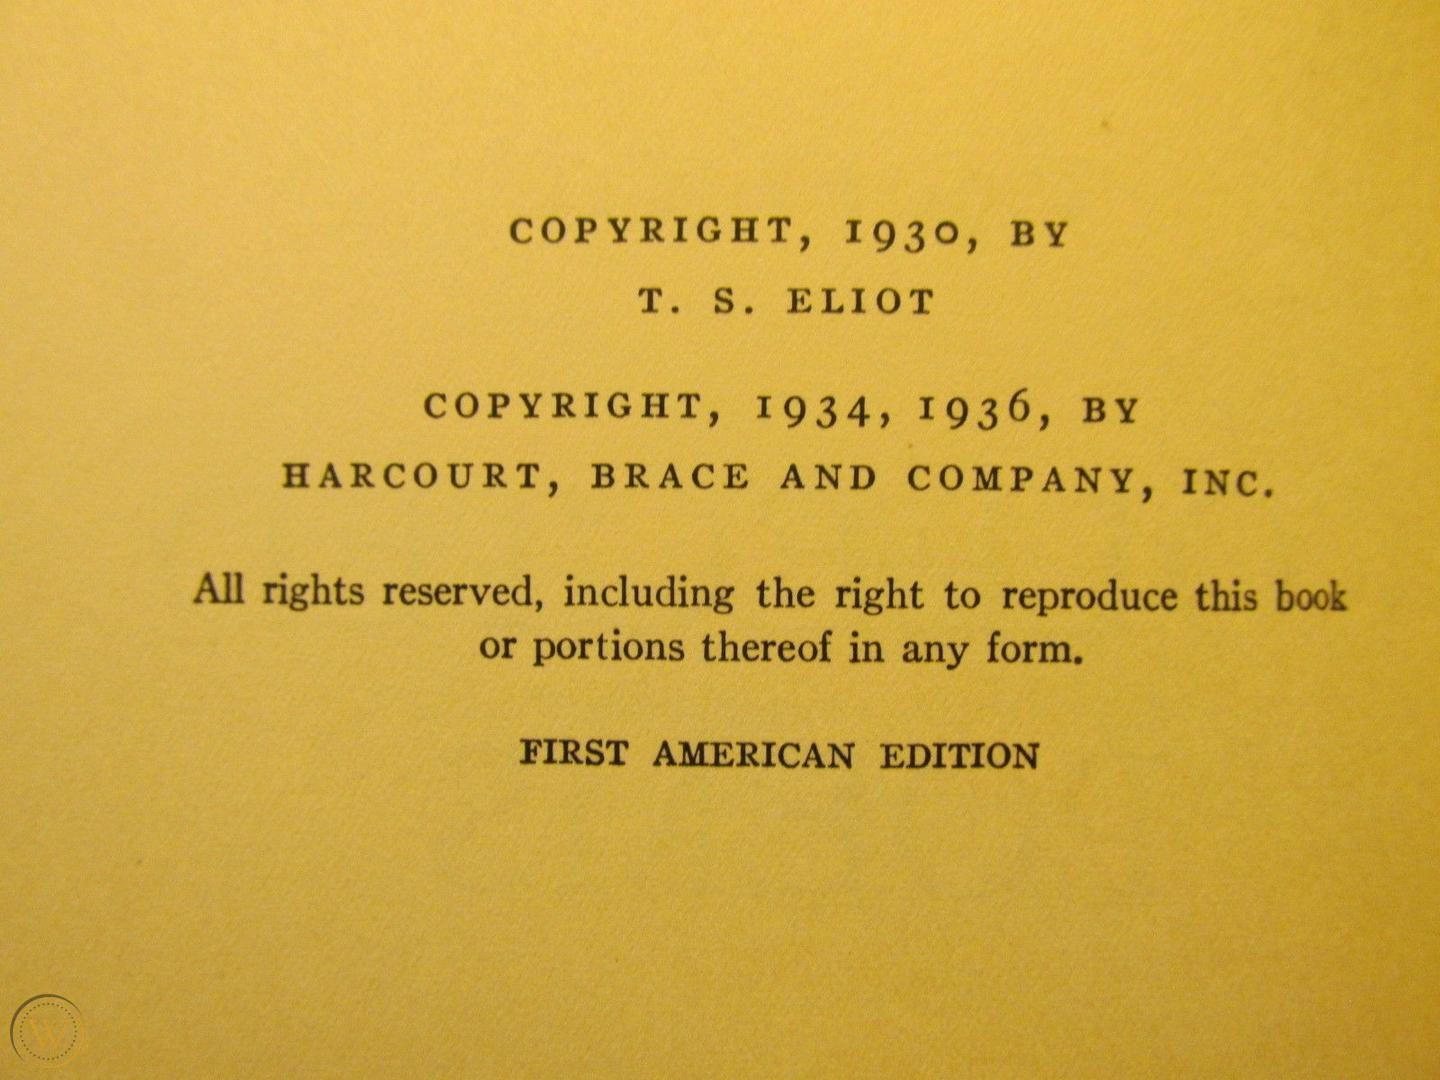 Image of TS Eliot copyright page